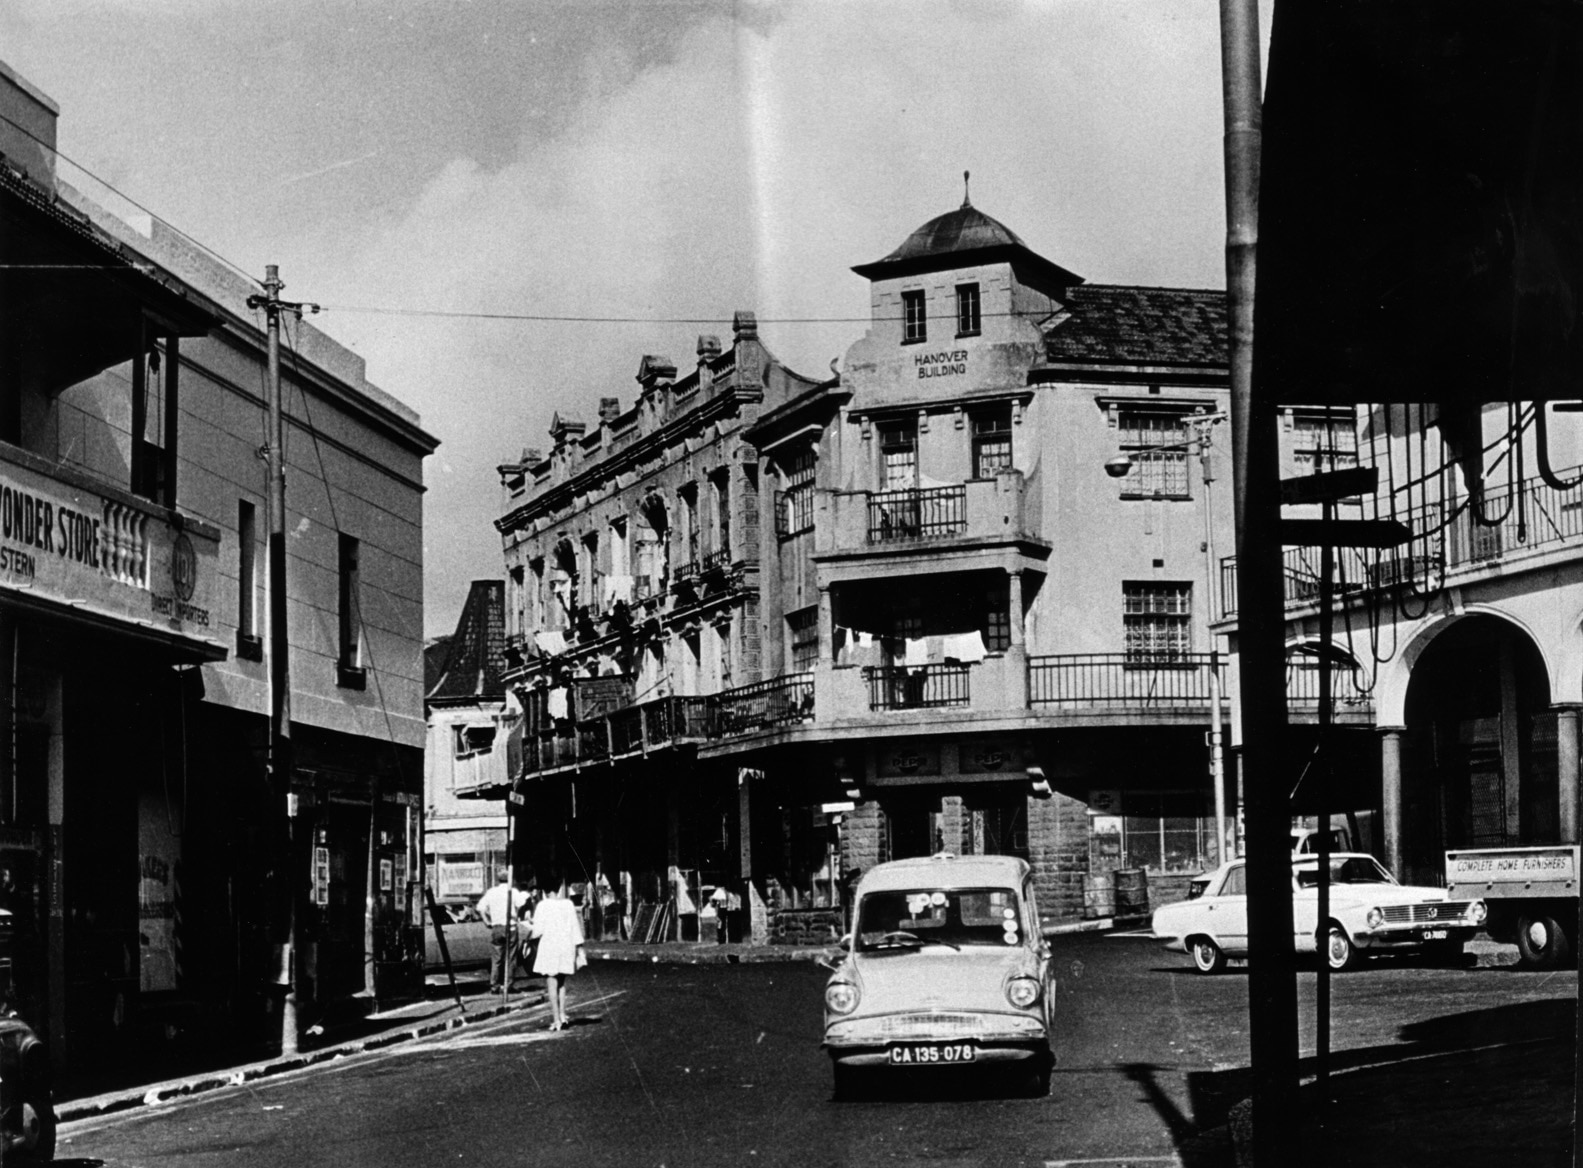 Hanover Street, District Six, années 60  Le quartier avant la destruction. De nombreux clubs de football du Cap sont nés dans le District Six et dans les quartiers environnants.  (District Six Museum Collection)